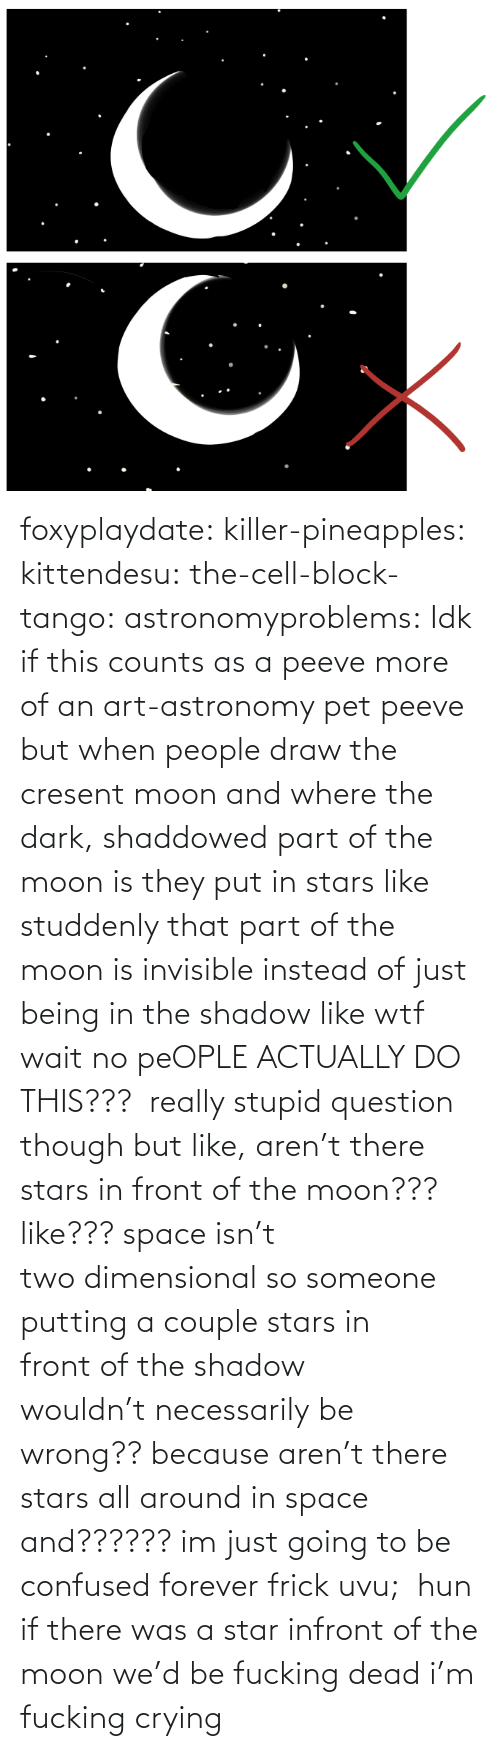 Moon: foxyplaydate:  killer-pineapples:  kittendesu:  the-cell-block-tango:  astronomyproblems:  Idk if this counts as a peeve more of an art-astronomy pet peeve but when people draw the cresent moon and where the dark, shaddowed part of the moon is they put in stars like studdenly that part of the moon is invisible instead of just being in the shadow like wtf  wait no peOPLE ACTUALLY DO THIS???   really stupid question though but like, aren't there stars in front of the moon??? like??? space isn't two dimensional so someone putting a couple stars in front of the shadow wouldn't necessarily be wrong?? because aren't there stars all around in space and?????? im just going to be confused forever frick uvu;   hun if there was a star infront of the moon we'd be fucking dead  i'm fucking crying